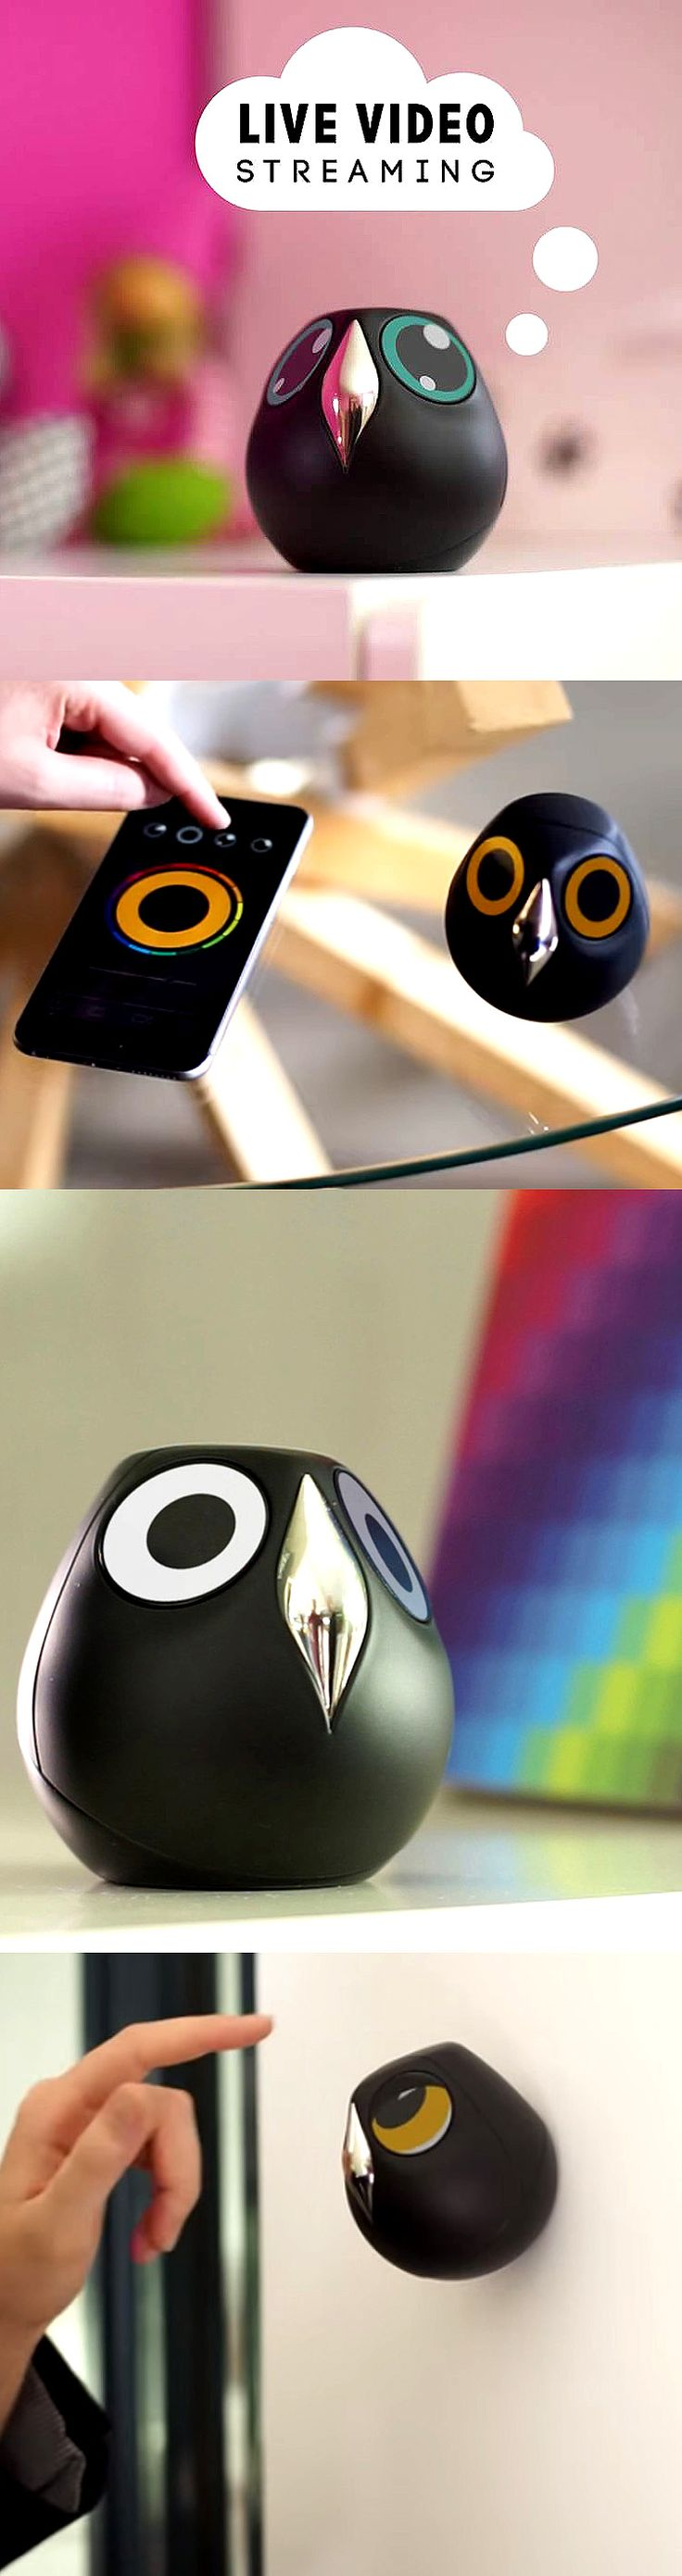 Feel the secured but comfortable with this adorable little home-monitoring owl.  Check it out==> | ULO - The Cutest But Smart Surveillance Camera Is Here! | http://gwyl.io/ulo-smart-surveillance-camera/